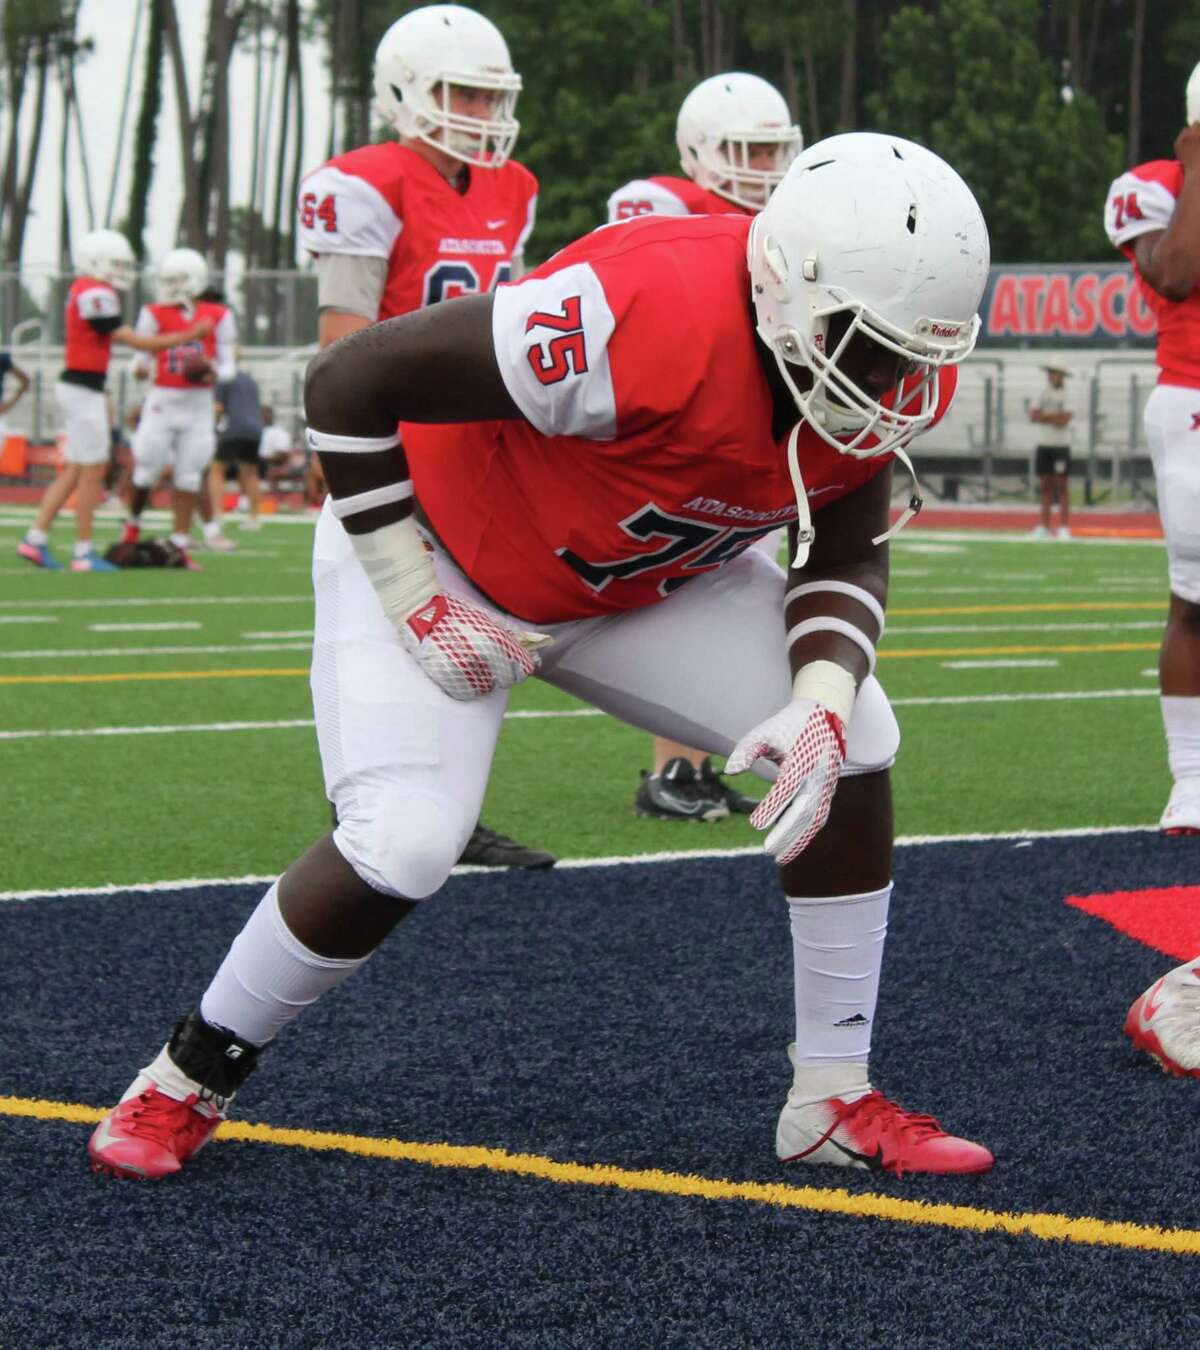 Atascocita offensive lineman Kameron Dewberry started at left tackle for the Eagles during his freshman season. He's setting up to be the next big offensive lineman in the country.